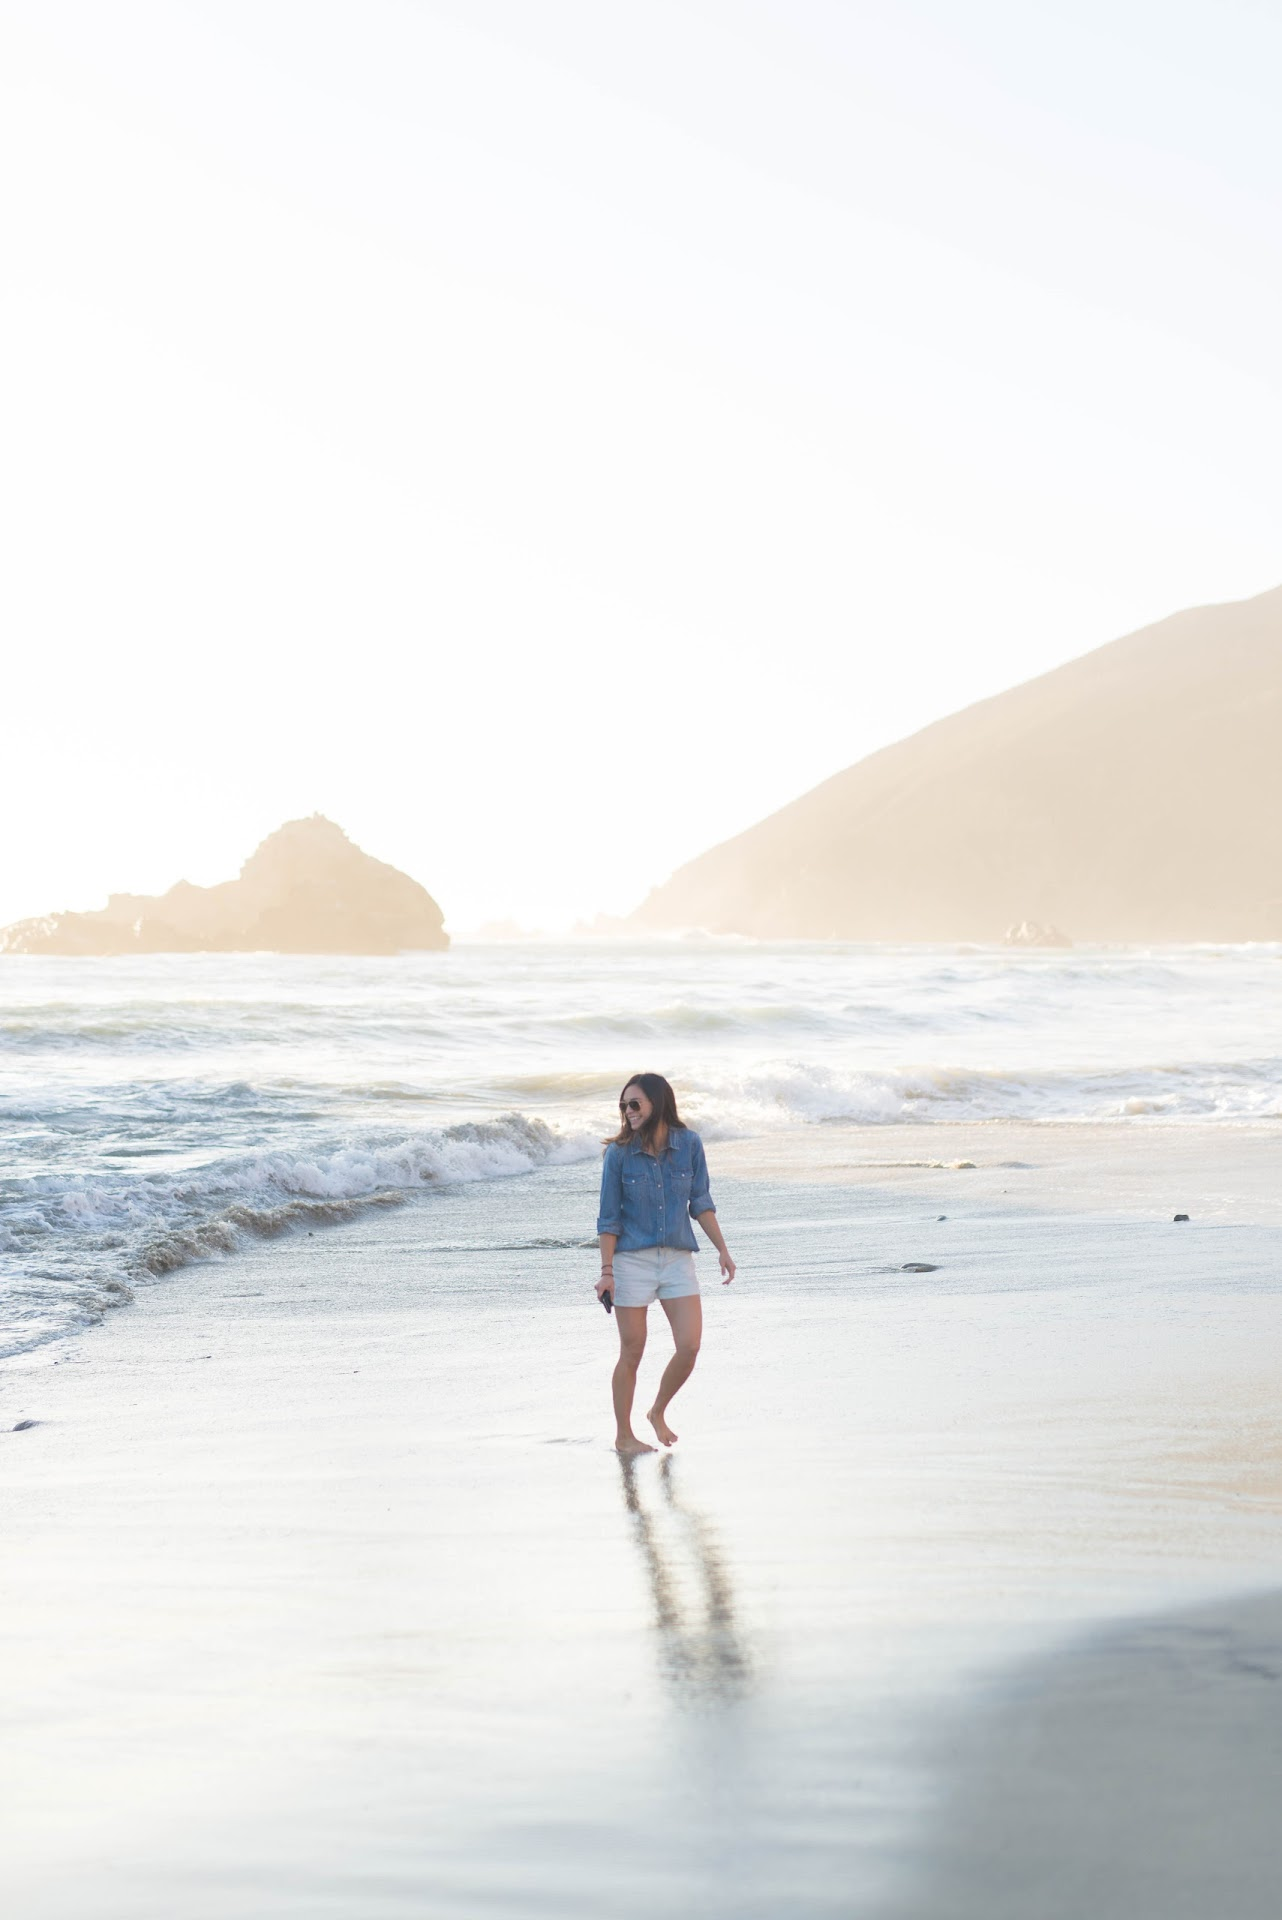 pfeiffer beach, big sur, photography, portraits, playing on the beach, photo ideas, central coast vacation, travel tips, itinerary, california travel blogger, lds mormon blogger, modest beach clothing